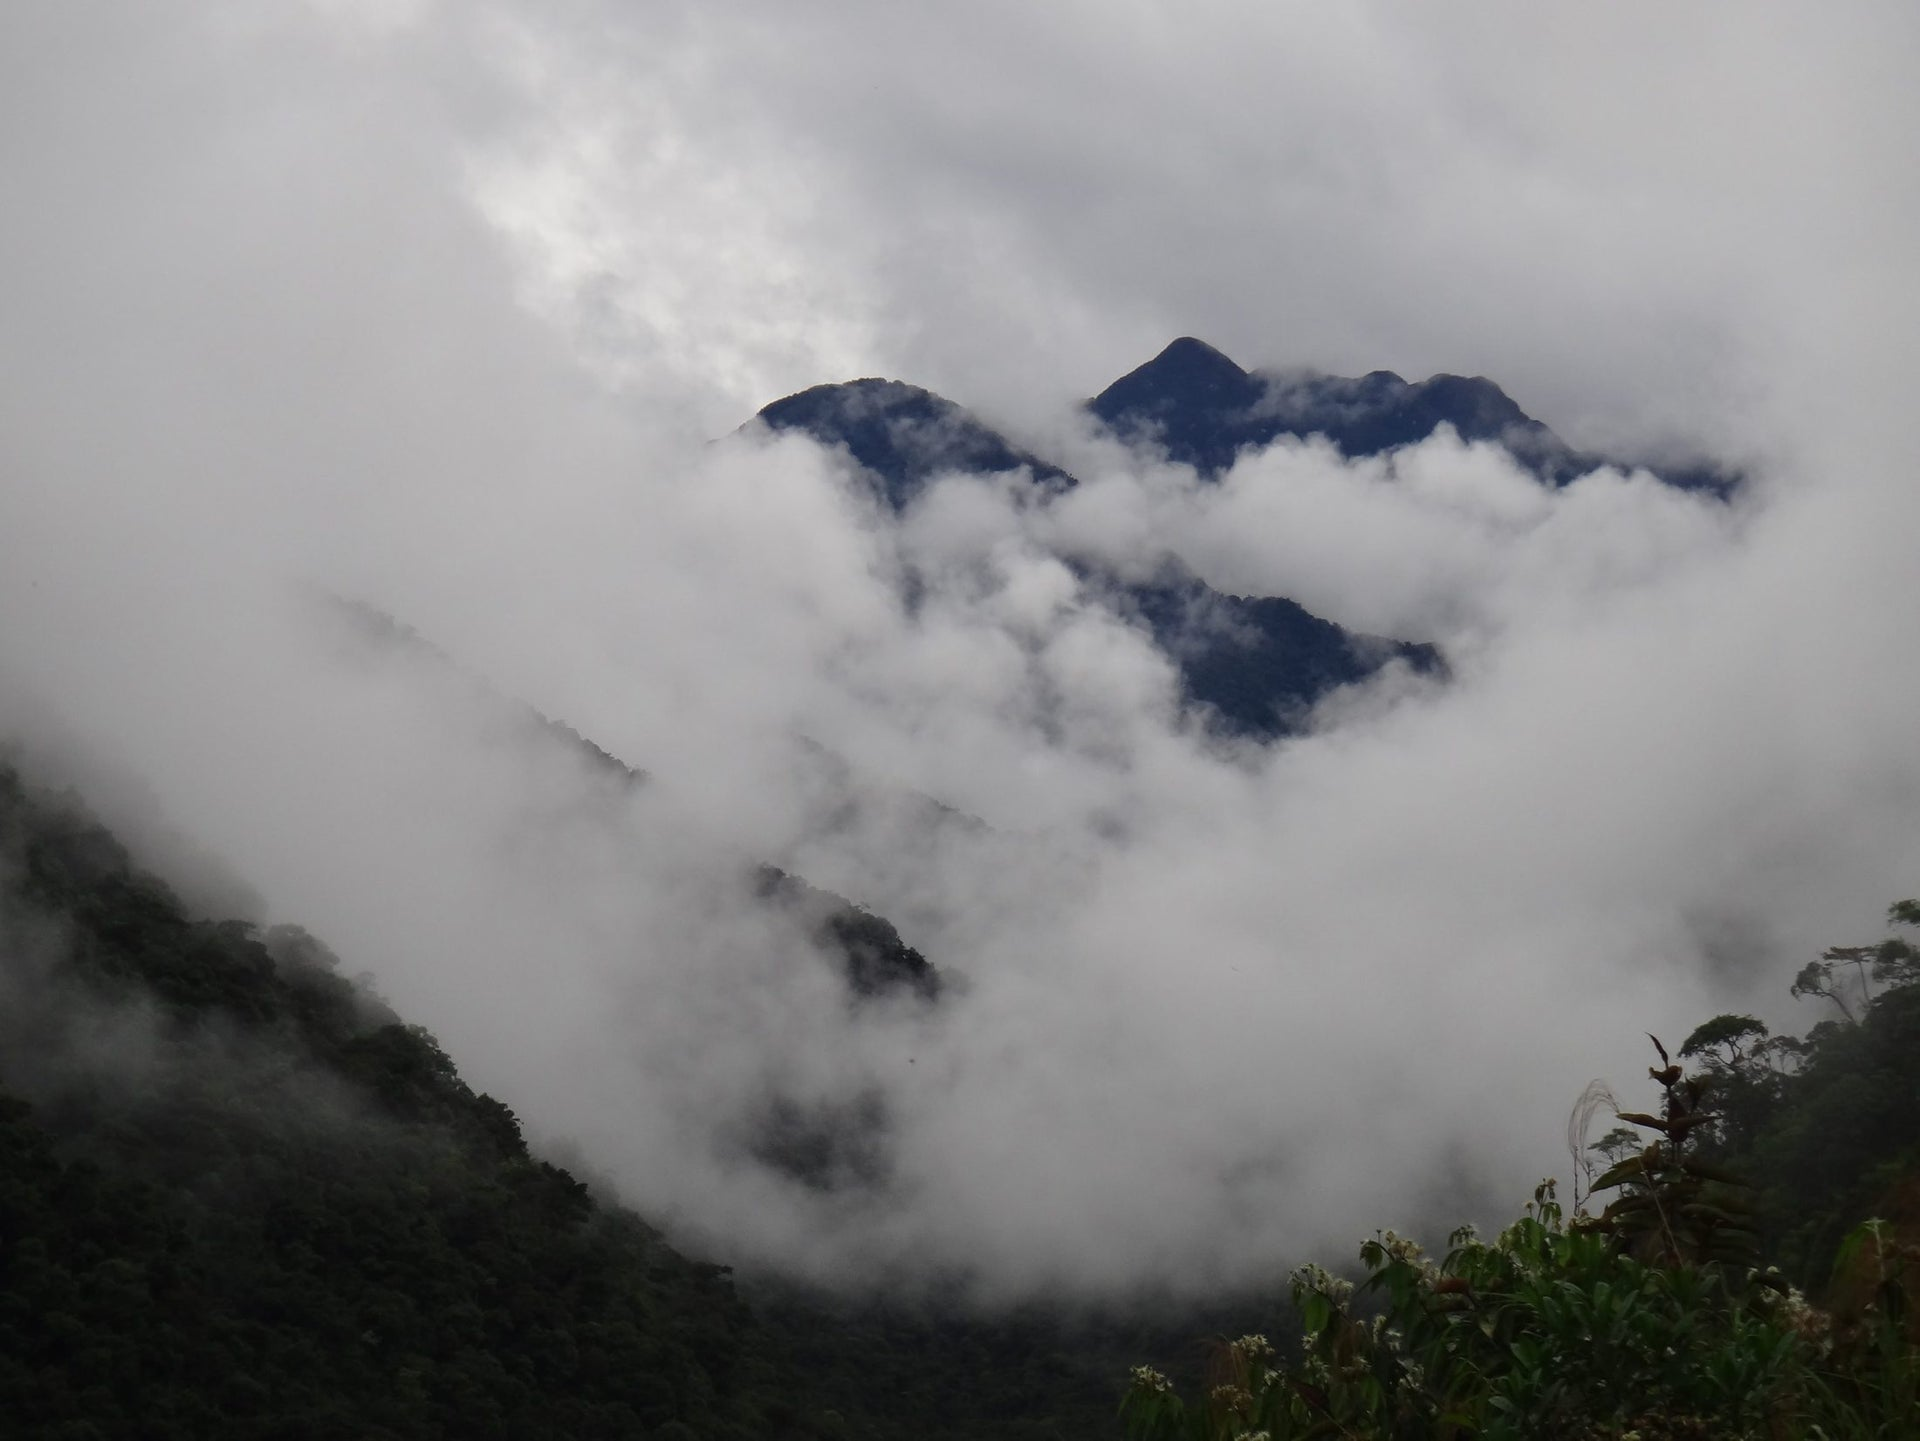 The Andean mountain cloud forest, habitat of the 100-foot incadendron tree.